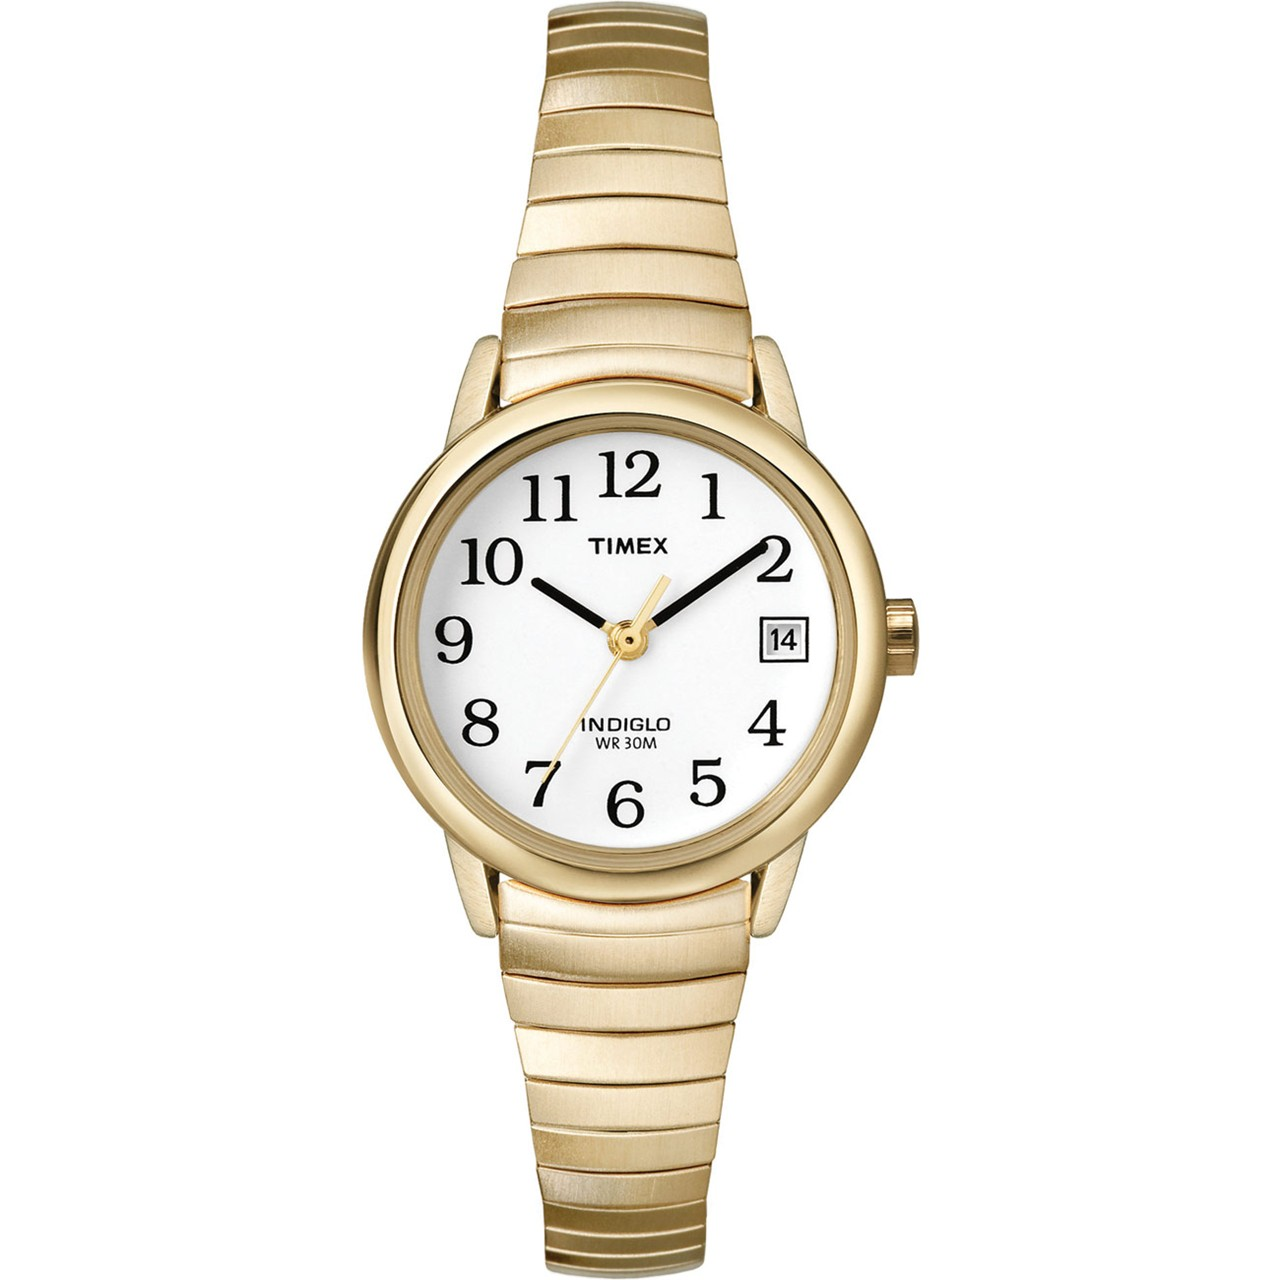 Maxiaids timex ladies indiglo watch exp band for Indiglo watches